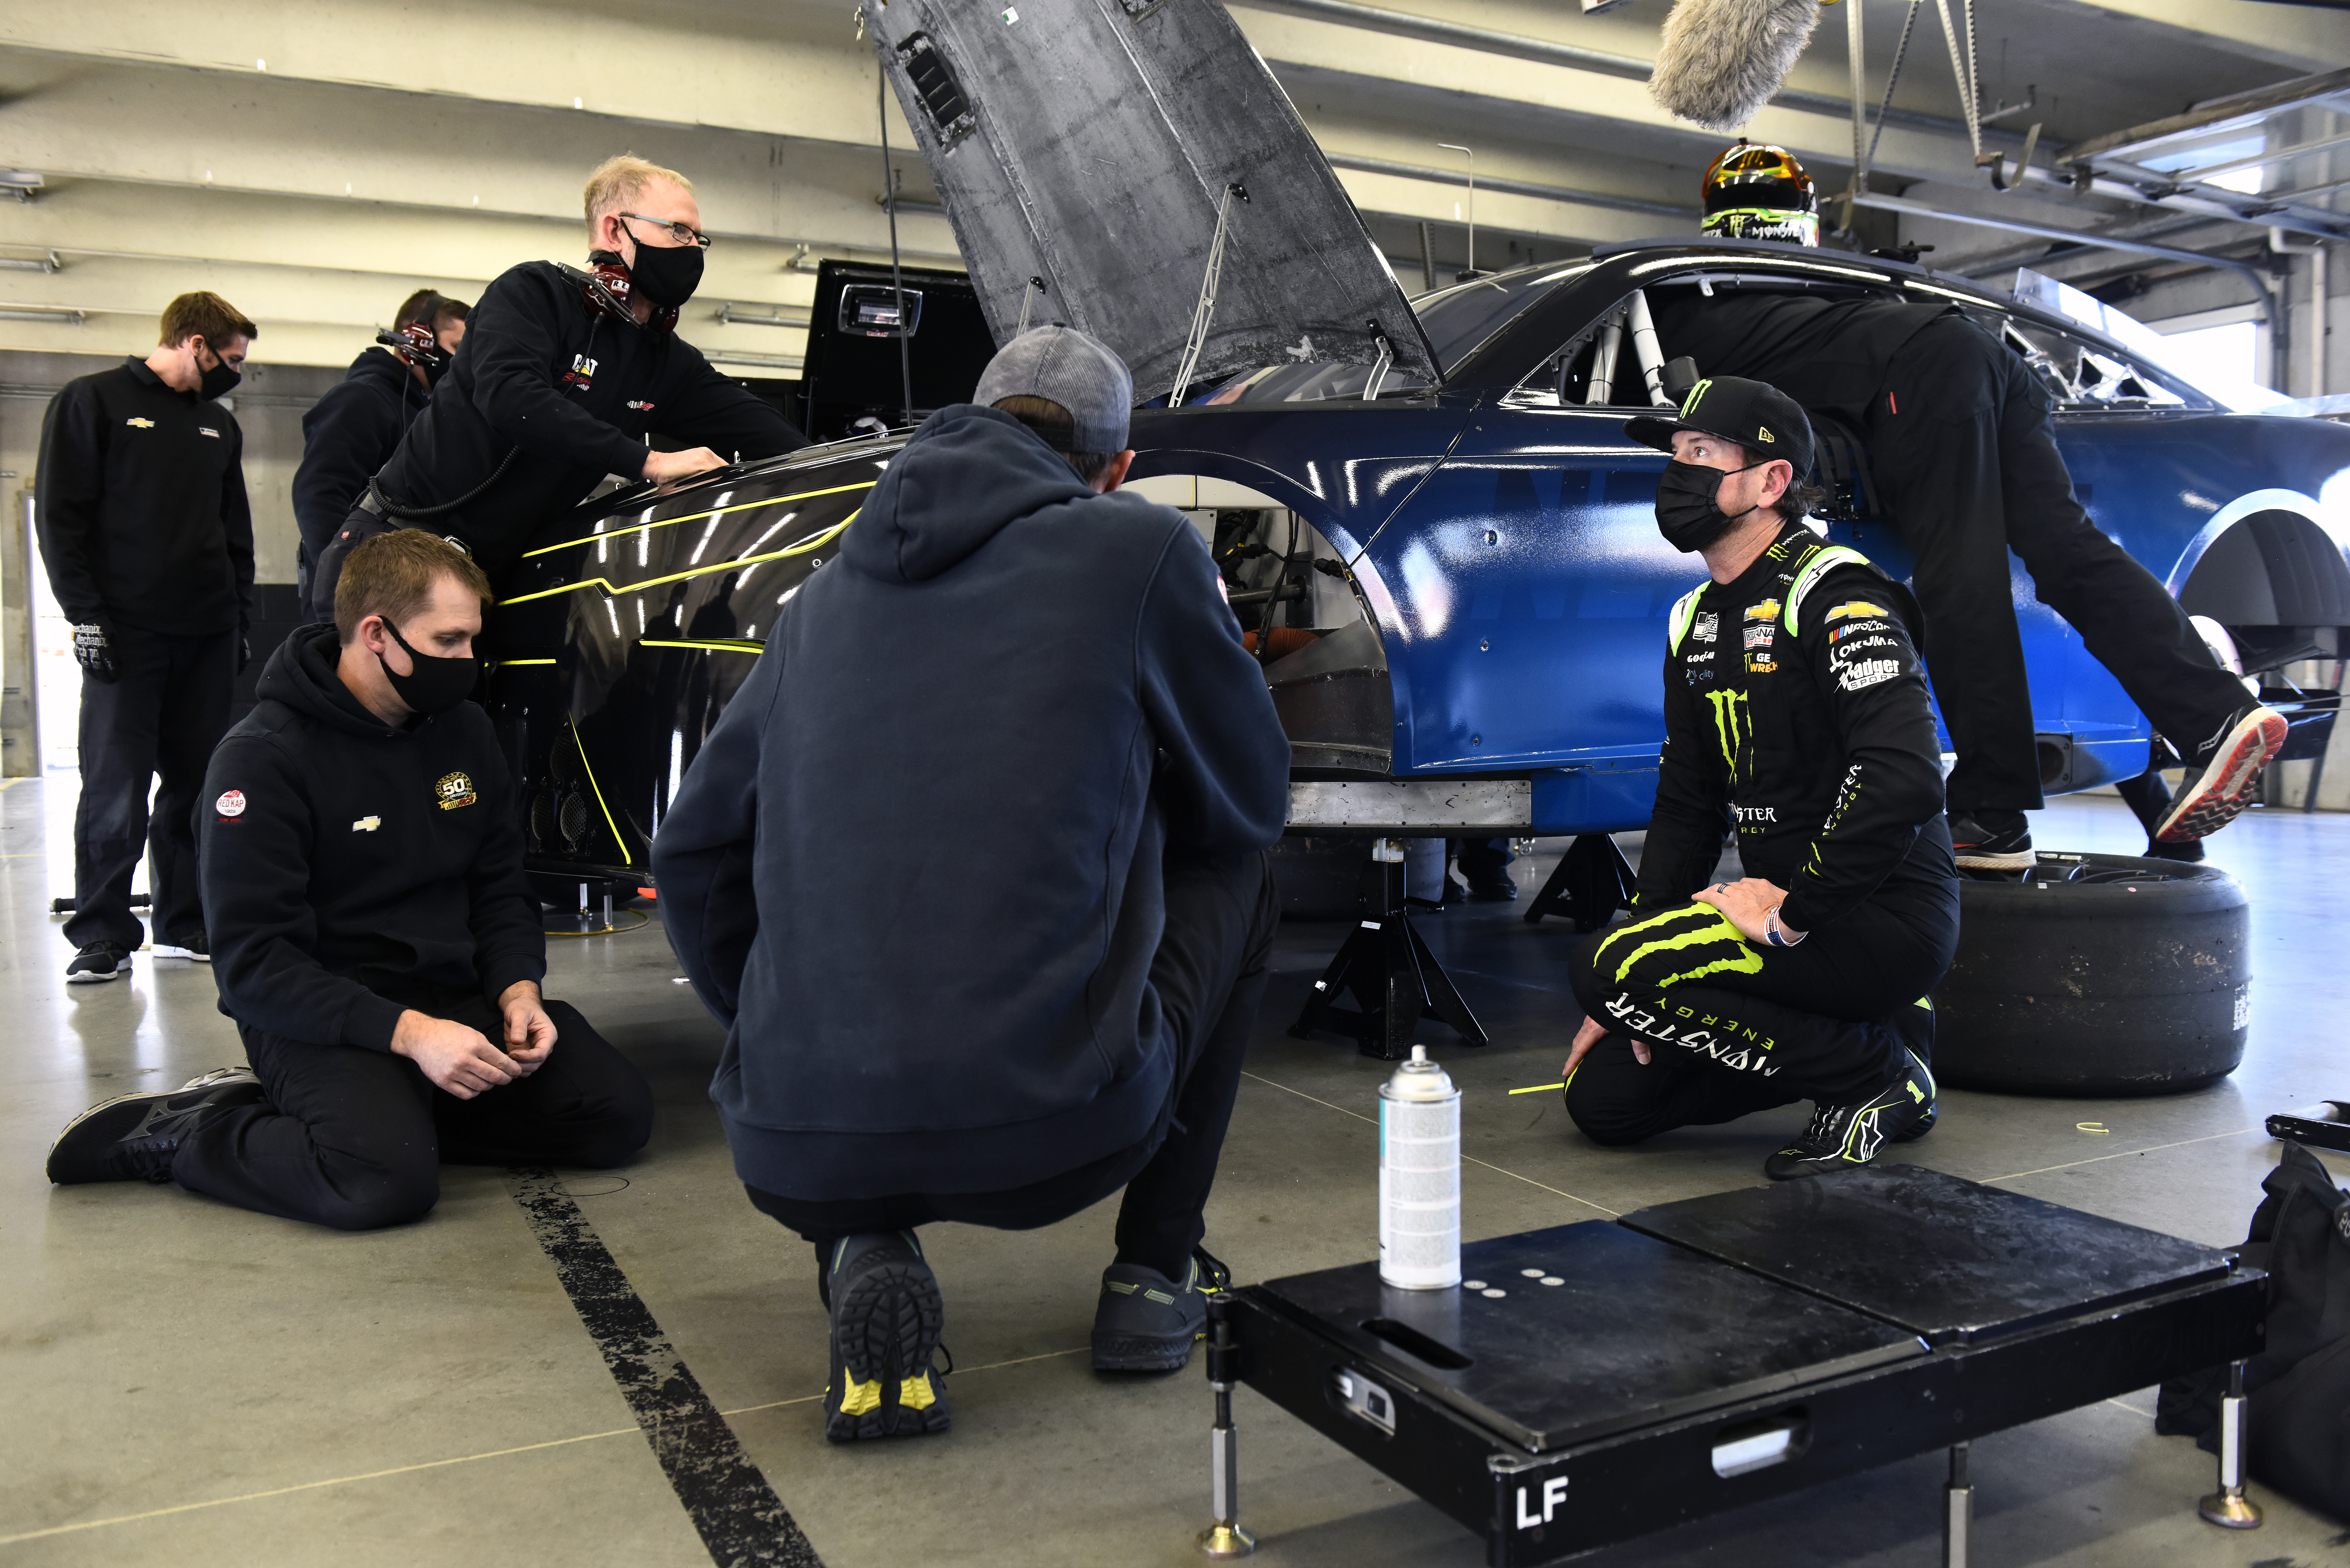 CONCORD, NORTH CAROLINA – NOVEMBER 16: Kurt Busch speaks with team members in the garage area during the NASCAR Cup Series test at Charlotte Motor Speedway on November 16, 2020 in Concord, North Carolina. (Photo by Jared C. Tilton/Getty Images) | Getty Images